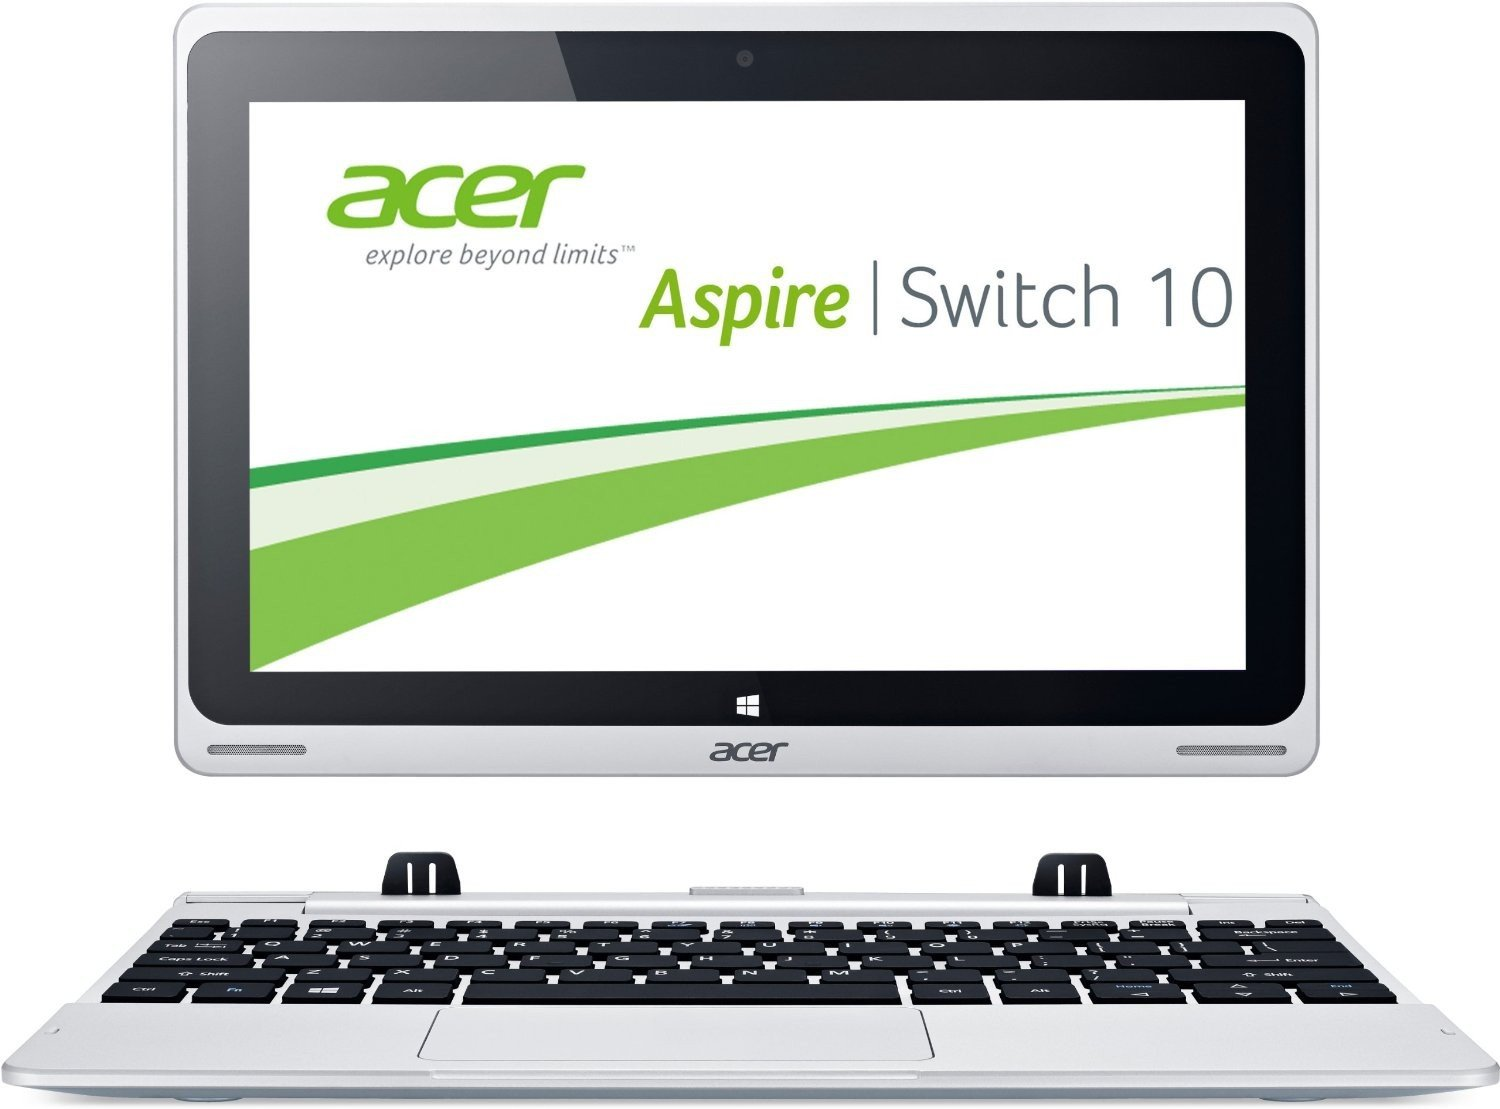 Acer Aspire Switch 10: Test of the Convertible Notebook